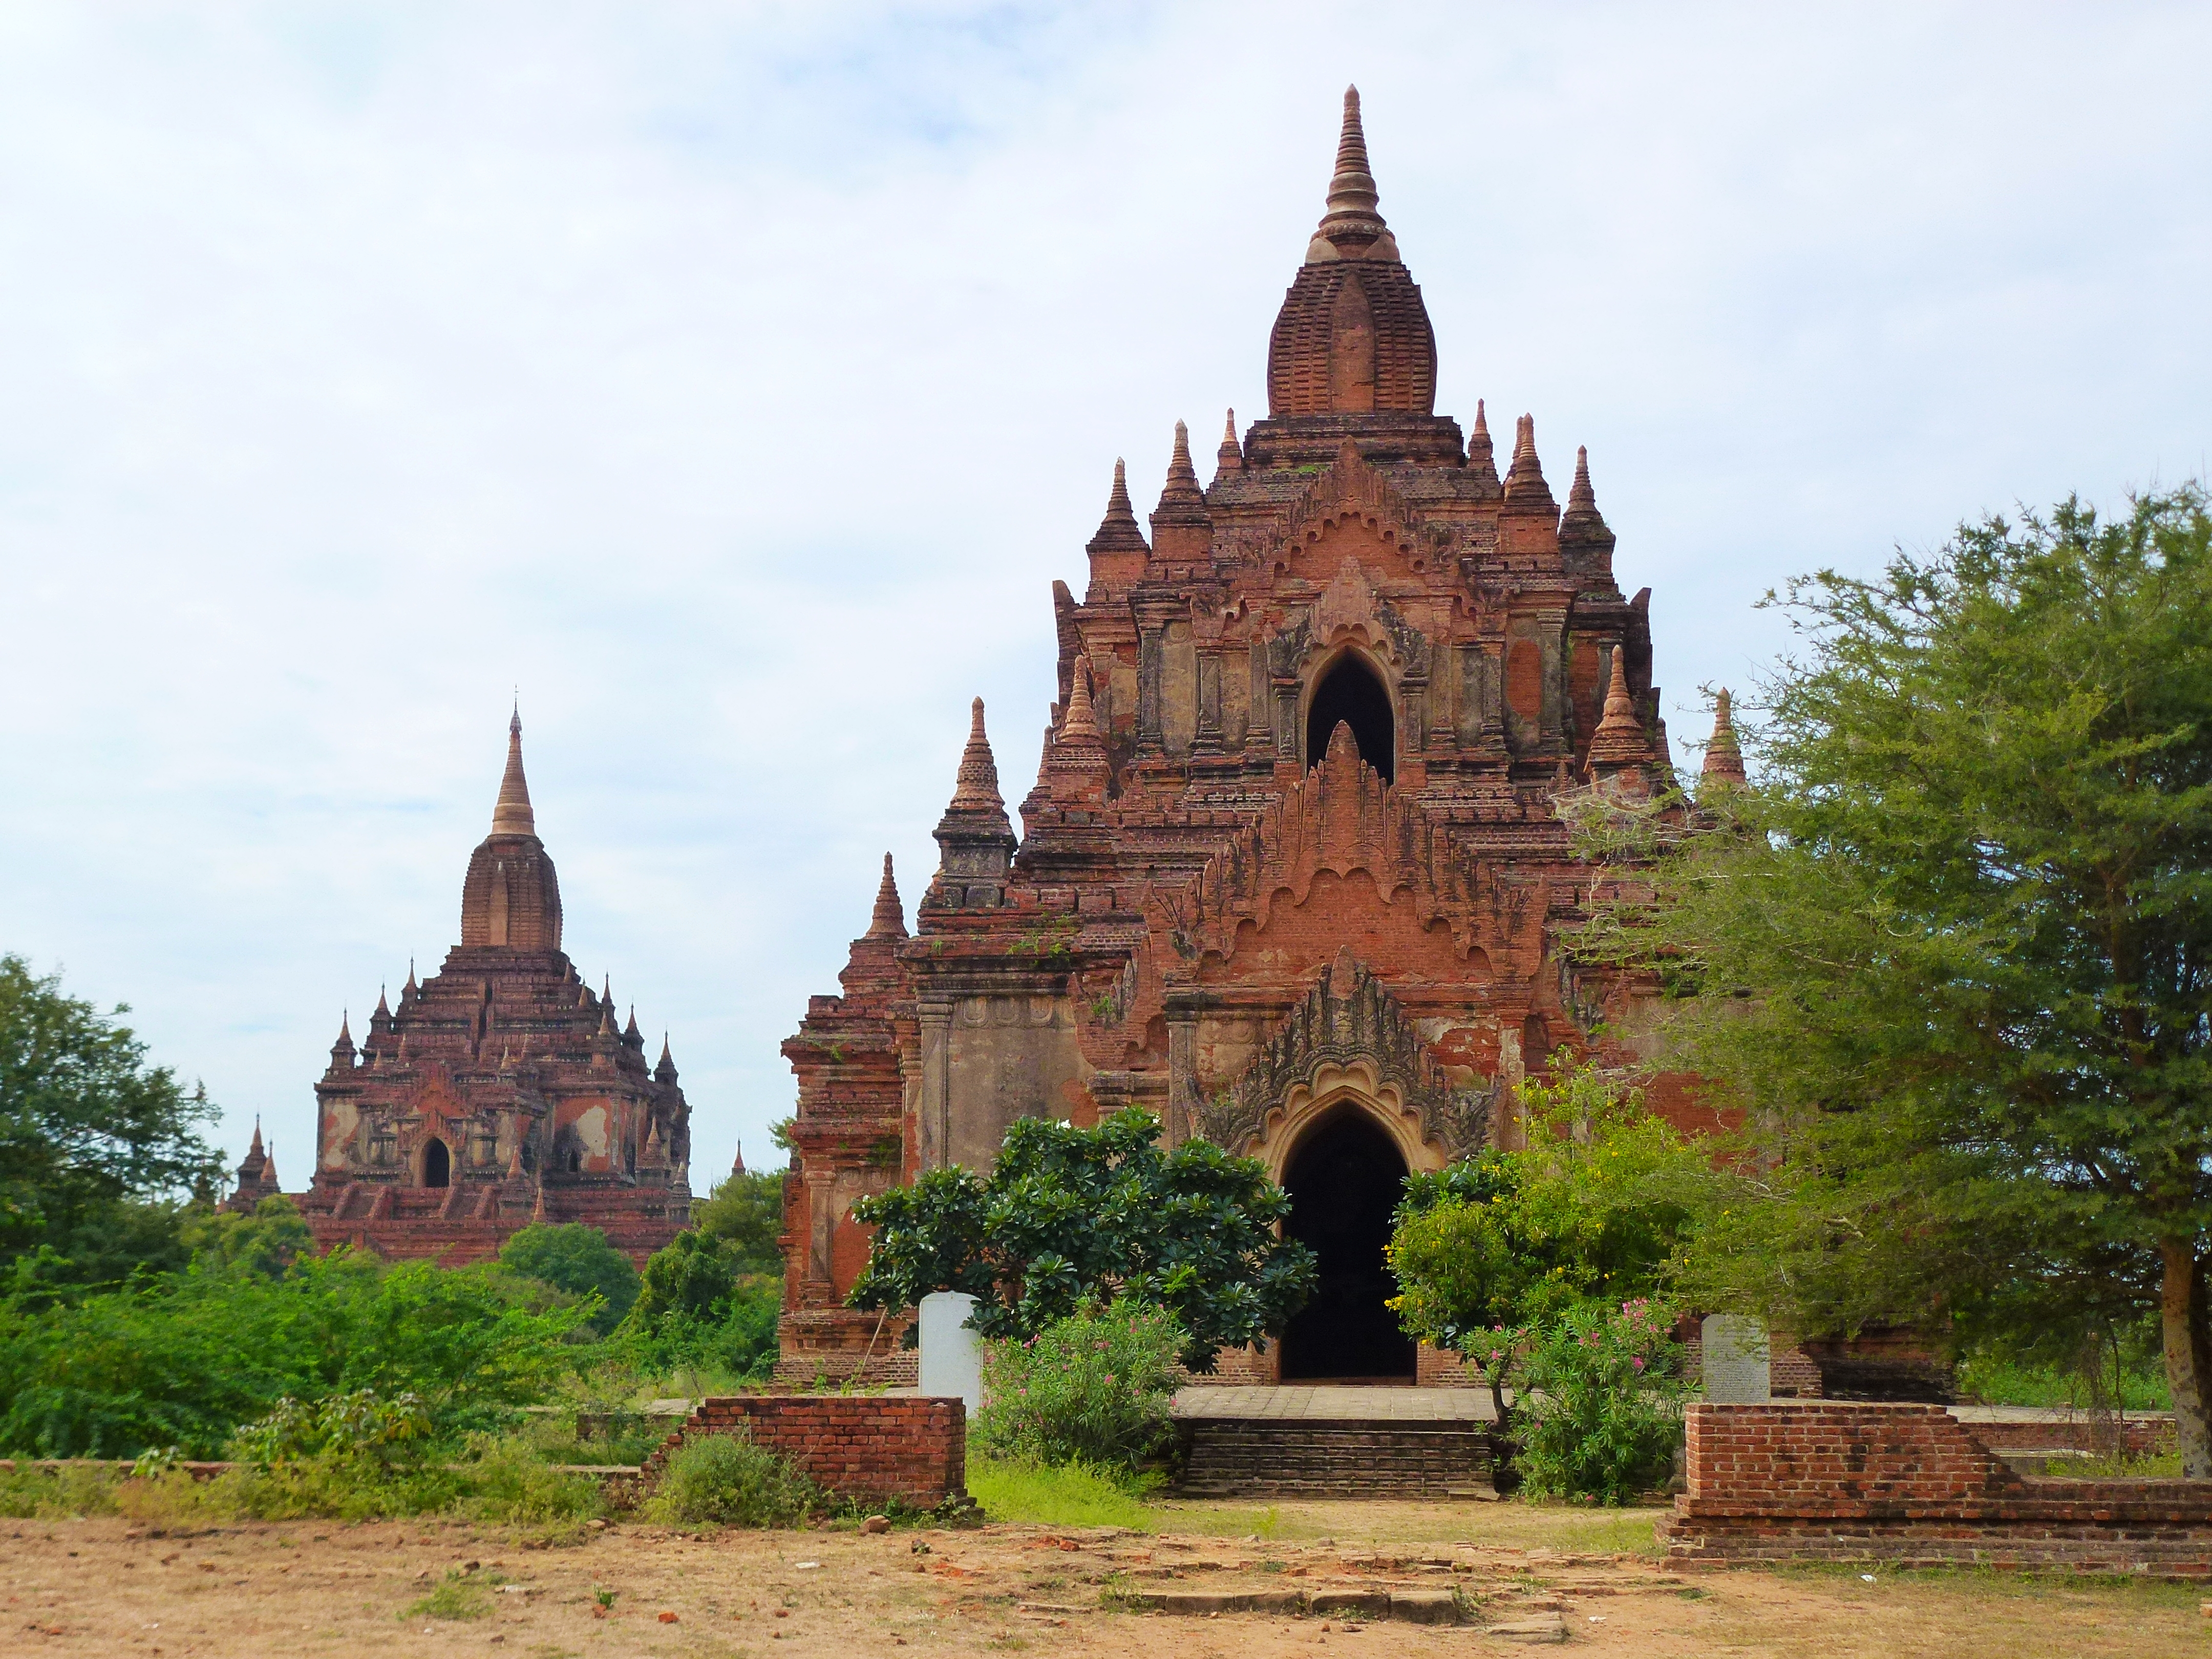 bagan photo essay A photo essay by irene barlian exploring the religious practise of buddhism in myanmar, through a photography project looking at the social life of monks.